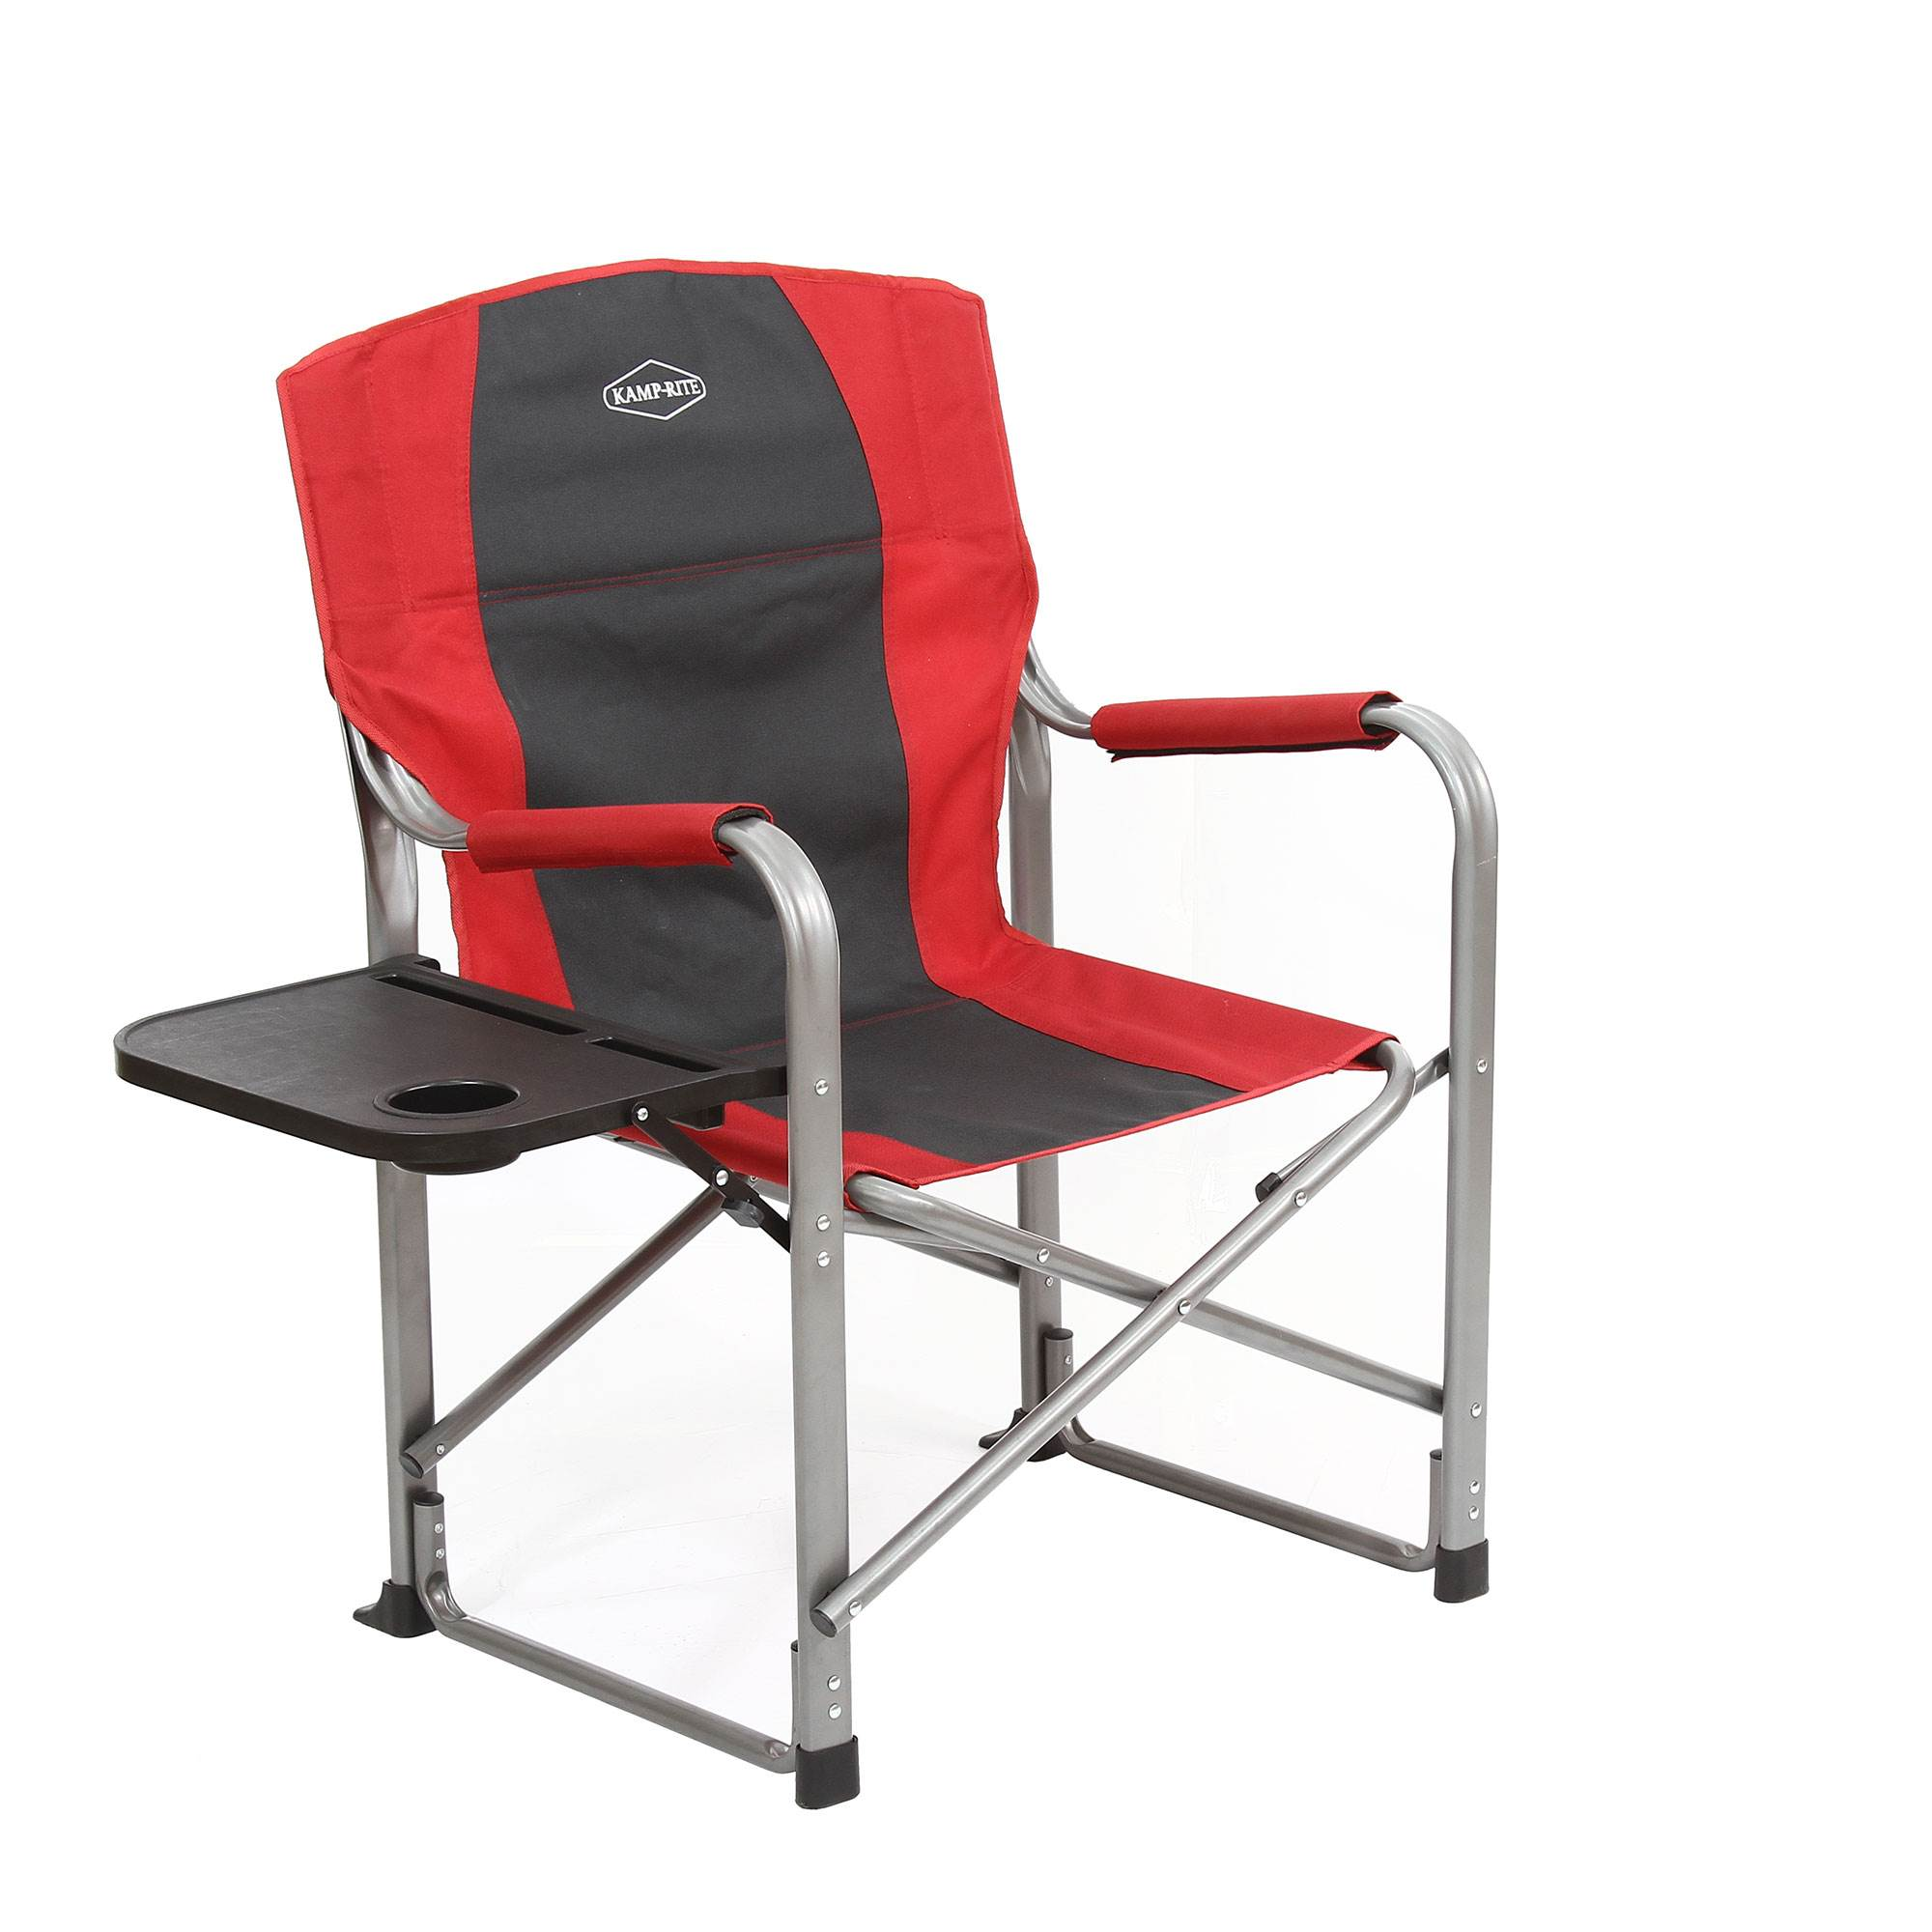 Kamp-Rite CC118 Outdoor Camp Folding Director/'s Chair with Side Table /& Cooler